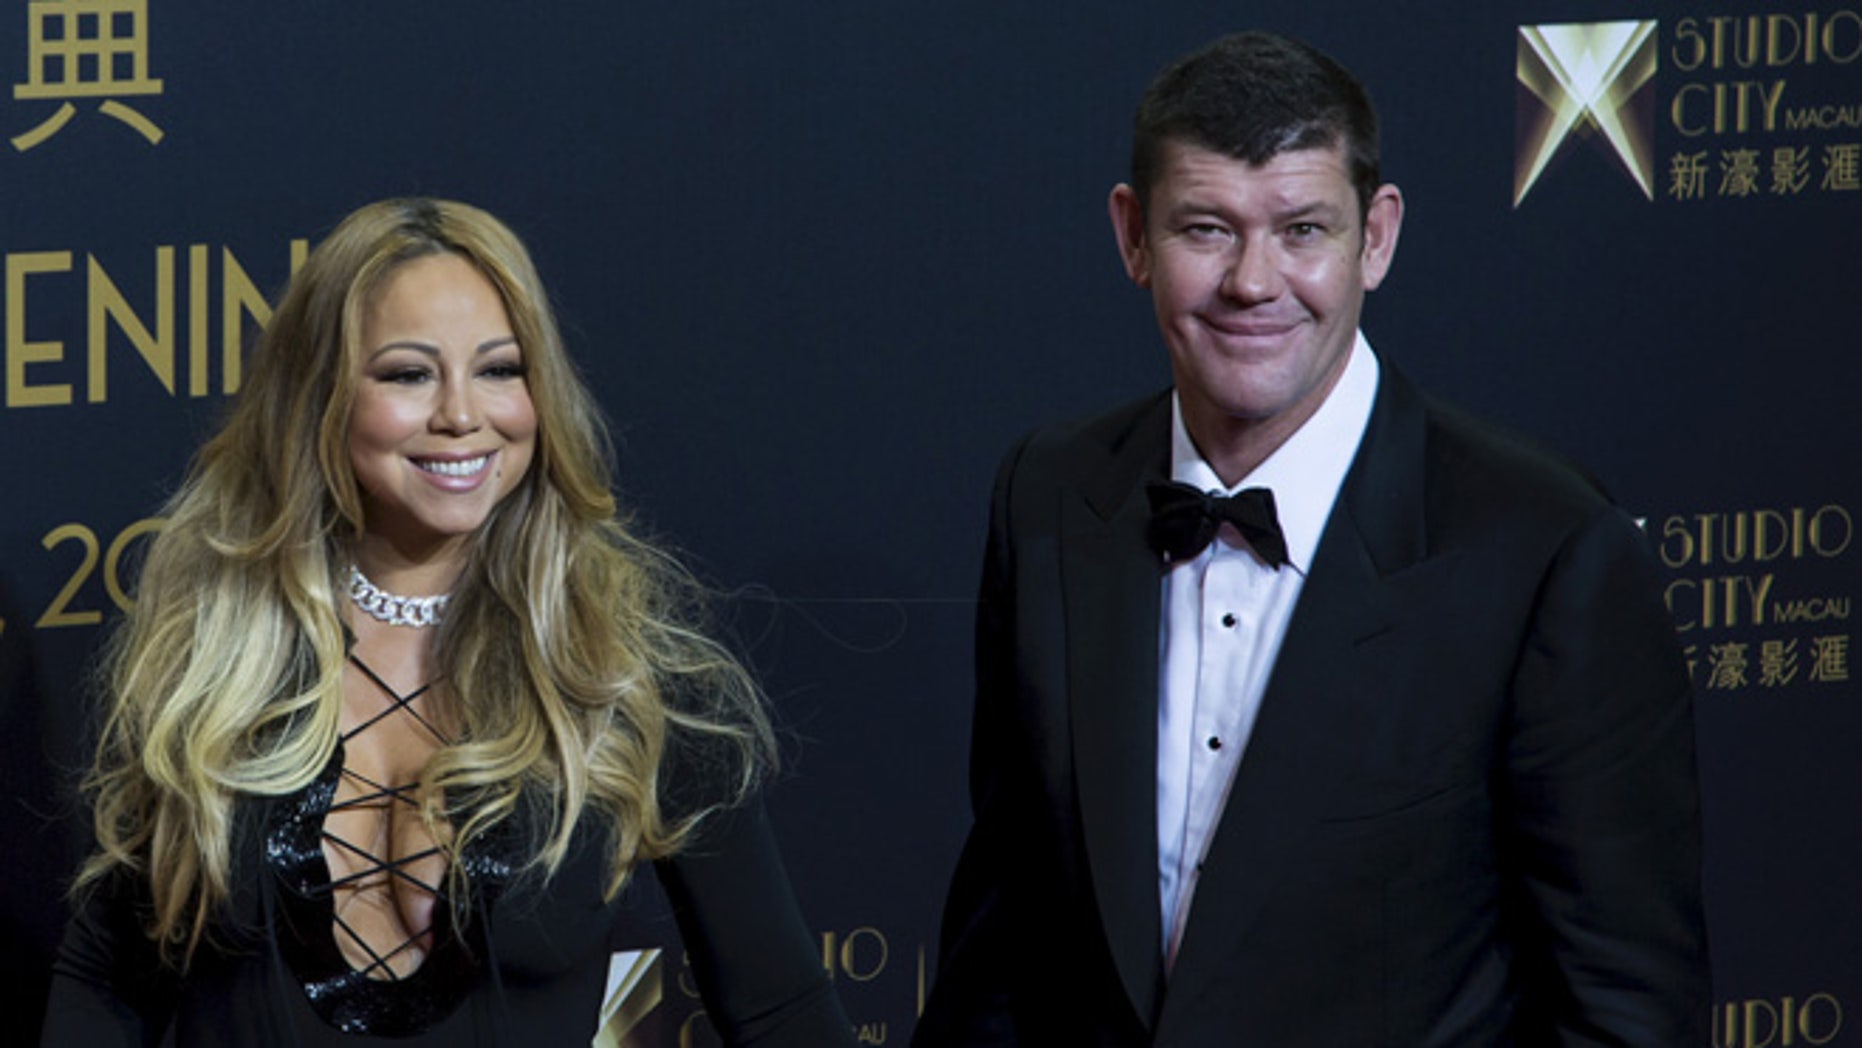 Mariah Carey reportedly was insulted by James Packer's prenup offer.